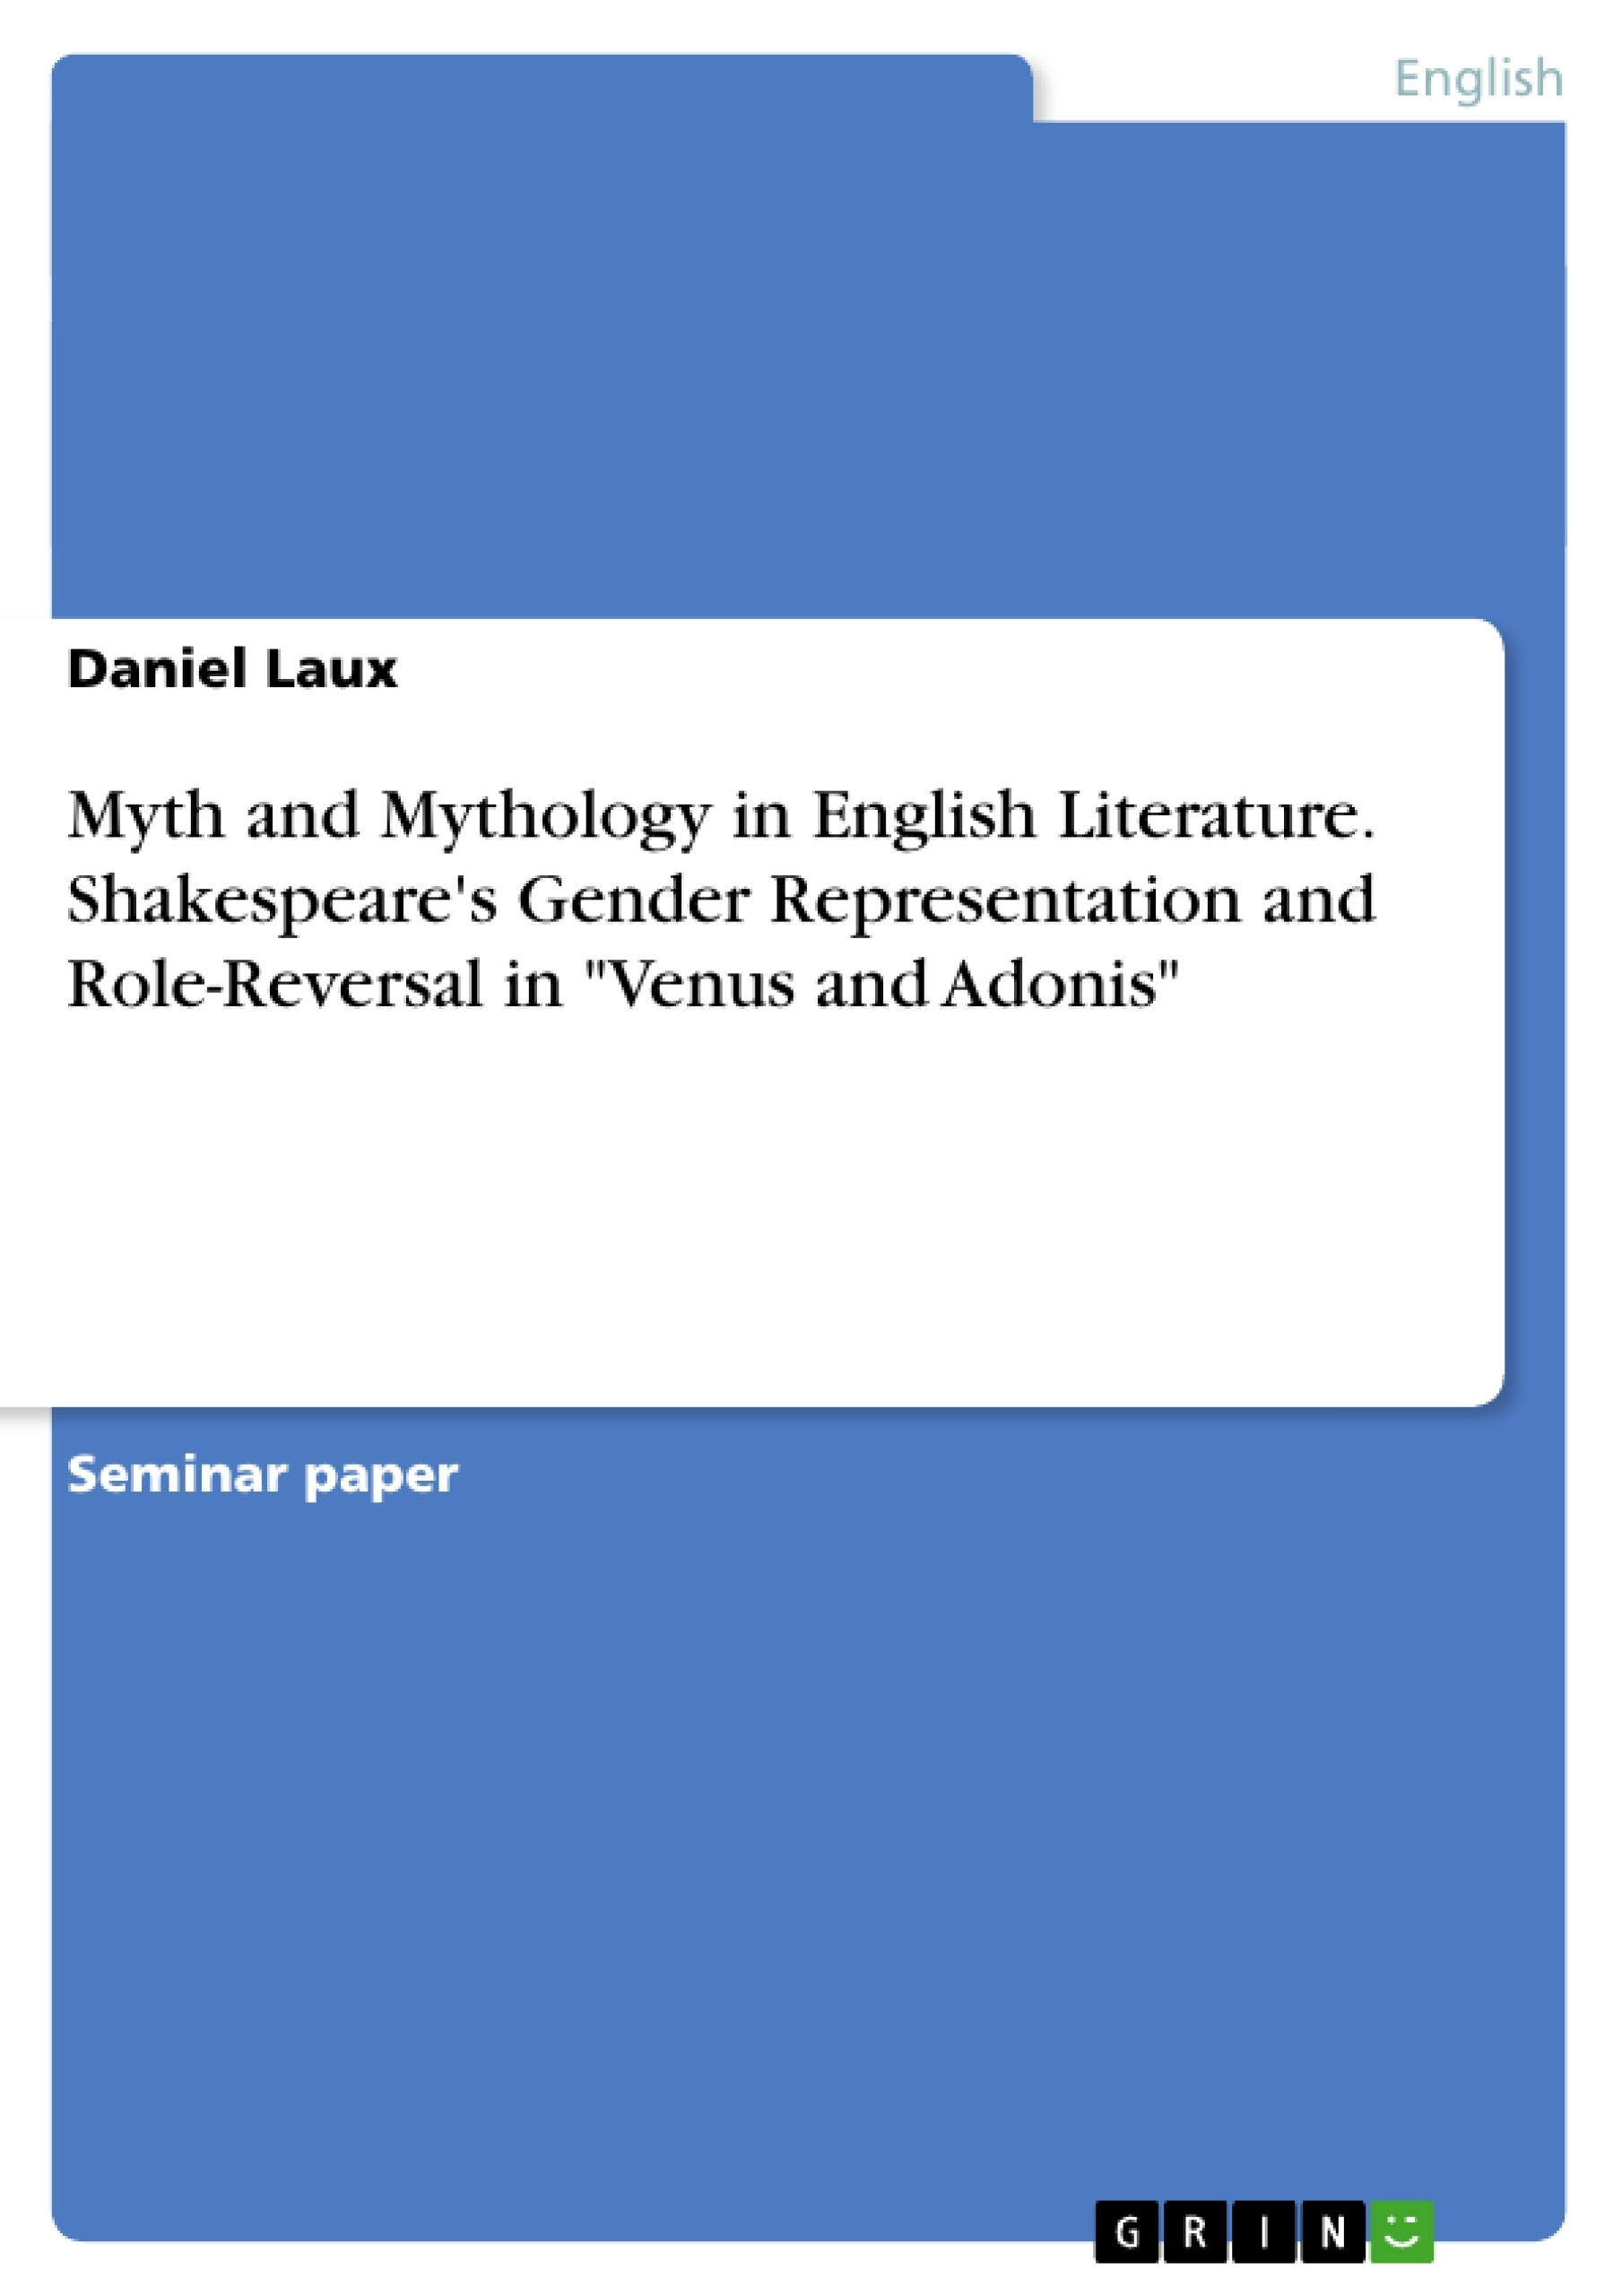 myth and mythology in english literature shakespeare s gender myth and mythology in english literature shakespeare s gender publish your master s thesis bachelor s thesis essay or term paper